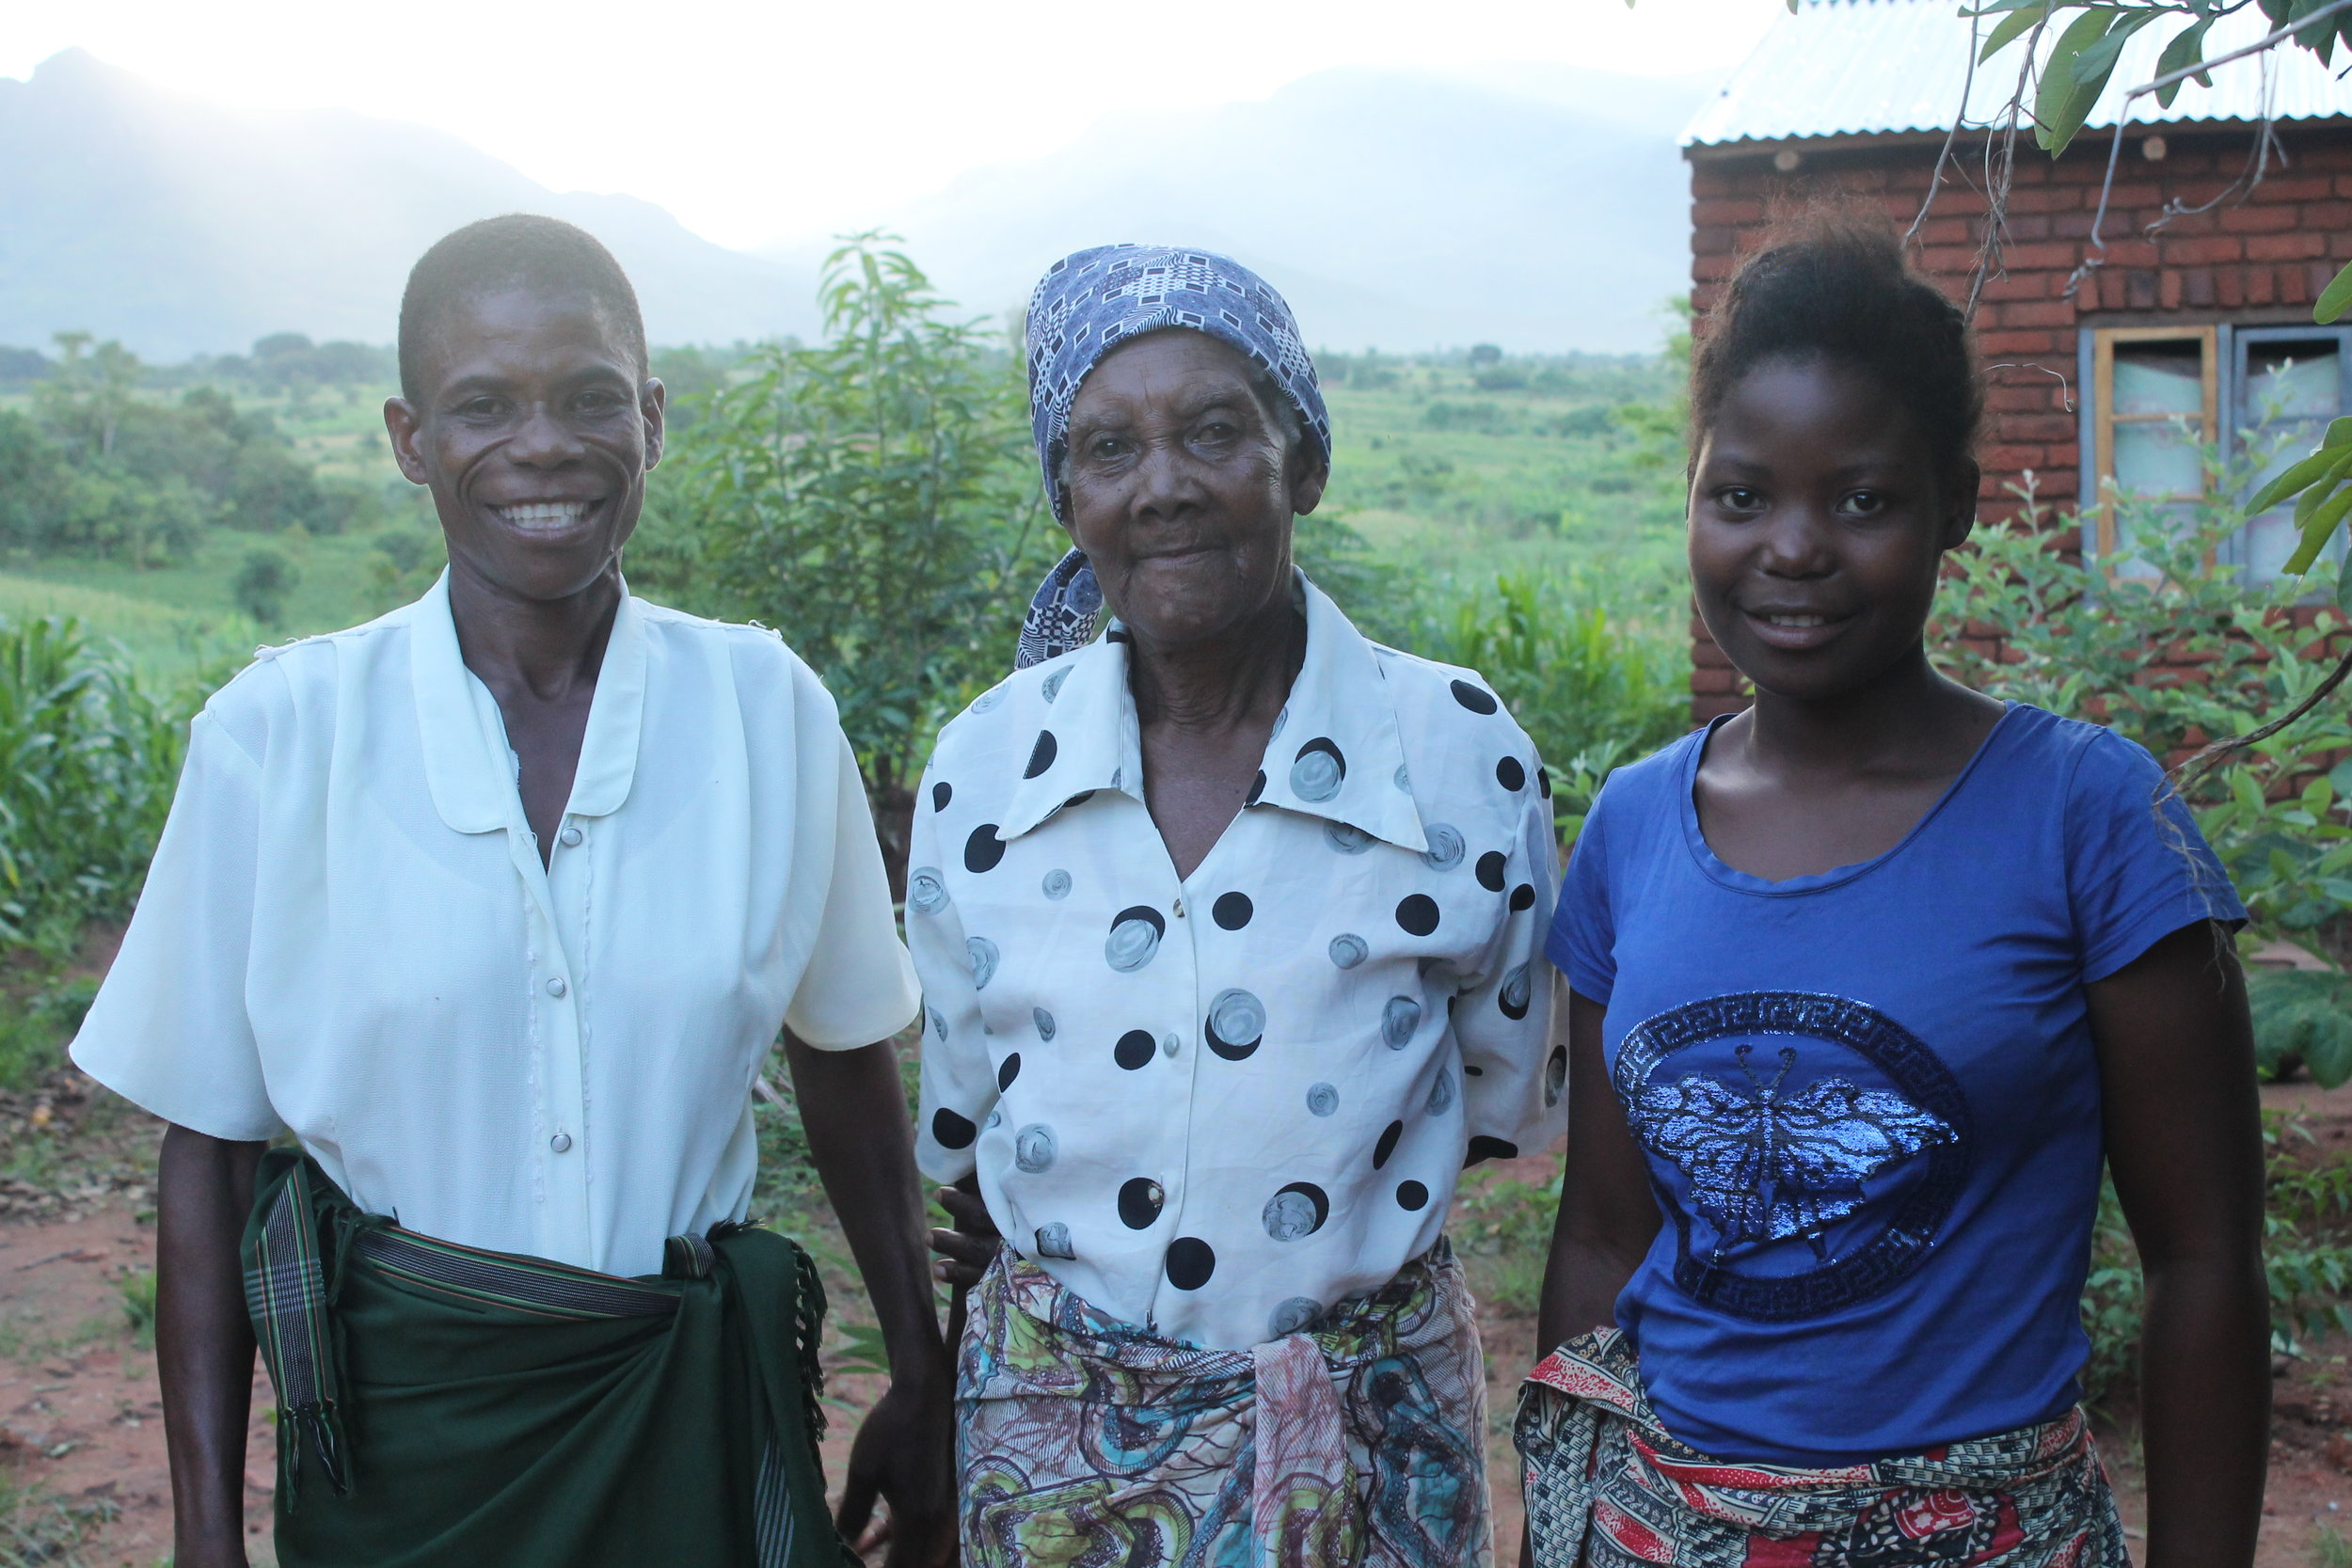 From left to right: Mother, grandmother, and Chikondi, standing on their property in January 2018.